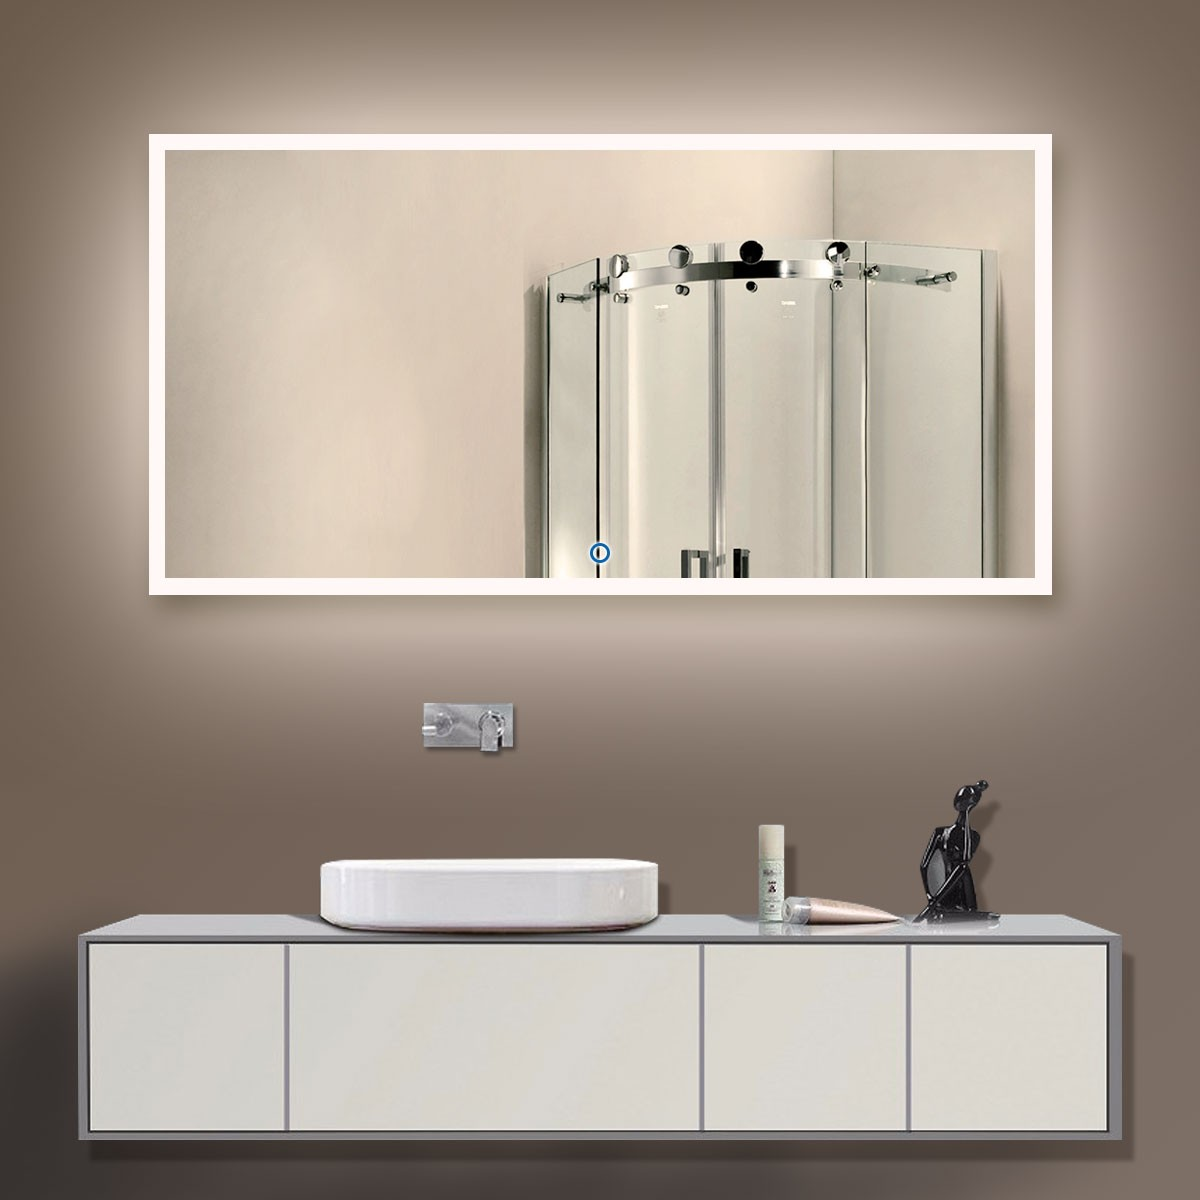 55 x 28 po miroir led salle de bain horizontal avec l. Black Bedroom Furniture Sets. Home Design Ideas